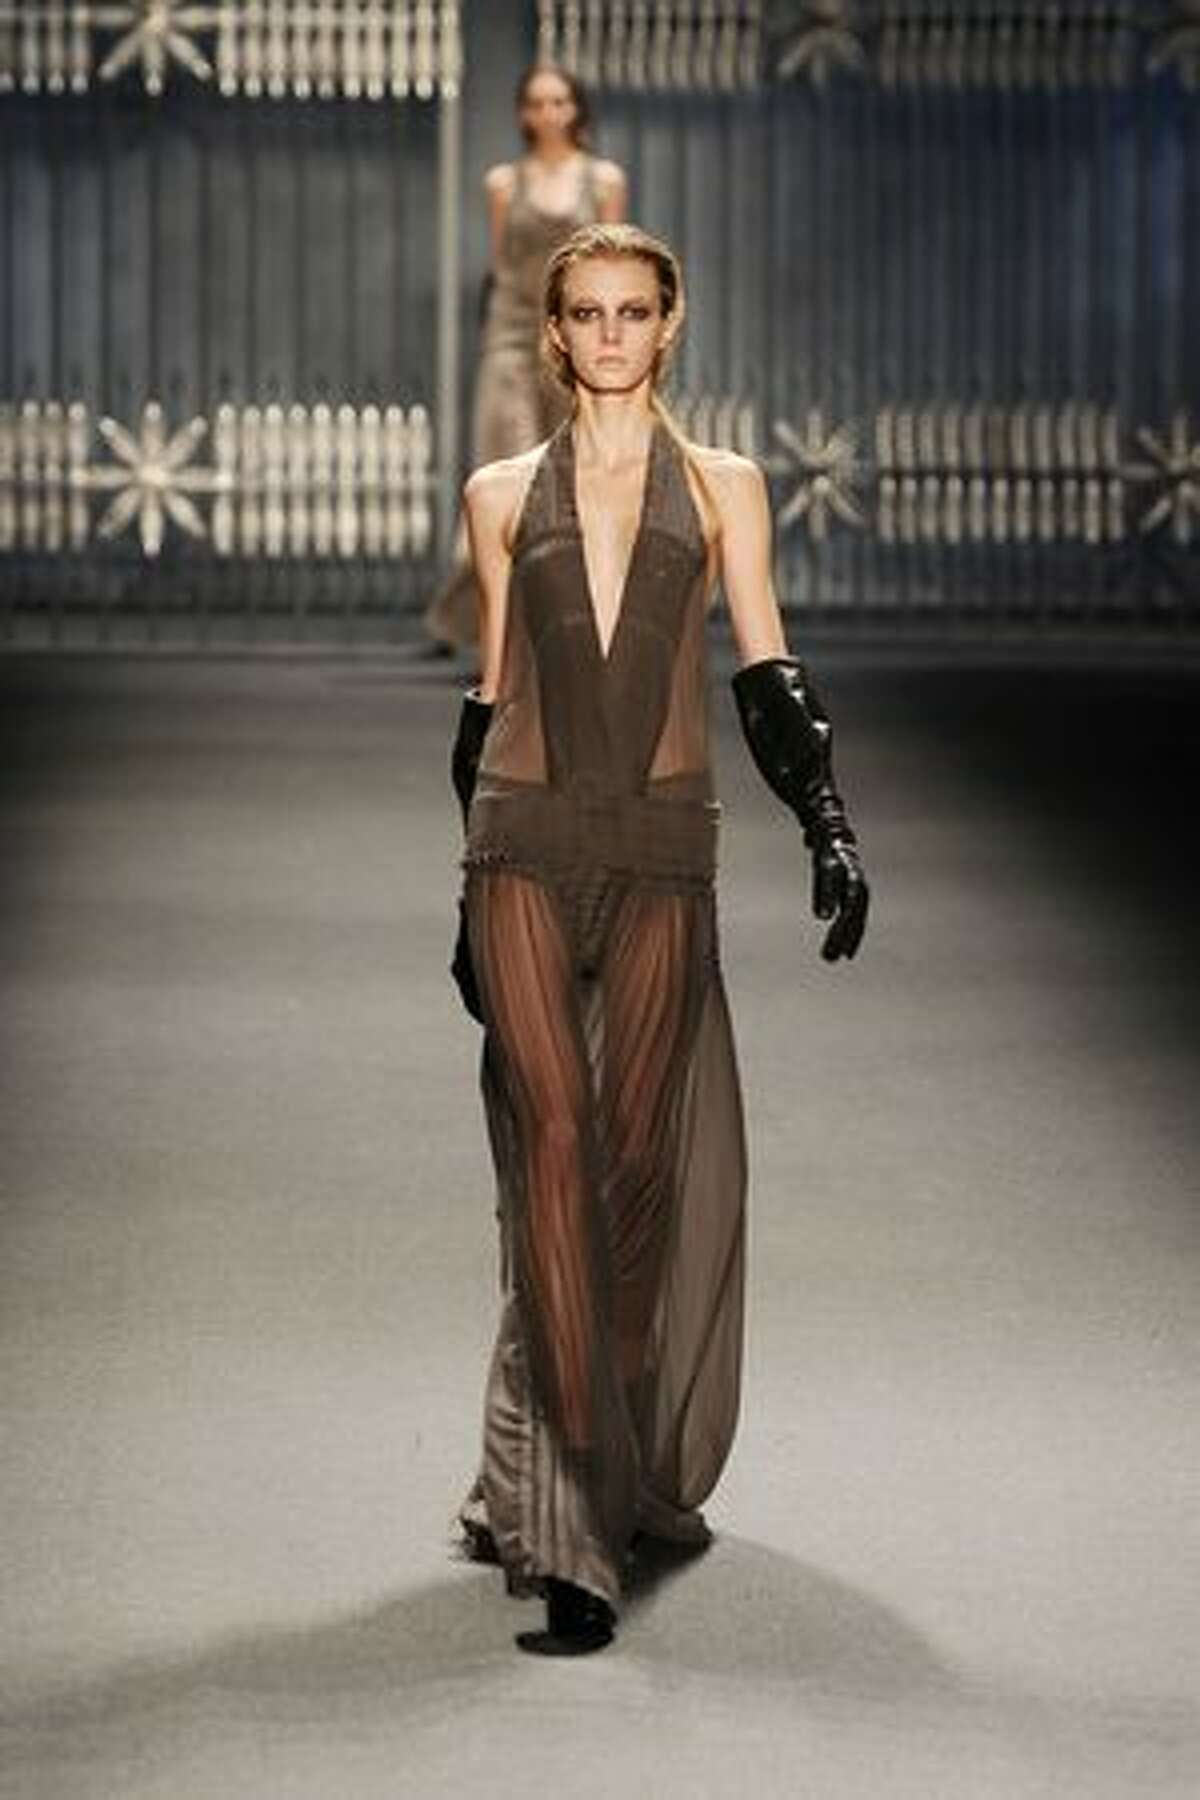 A model walks the runway at the Vera Wang Fall 2011 fashion show during Mercedes-Benz Fashion Week at The Stage at Lincoln Center in New York City.